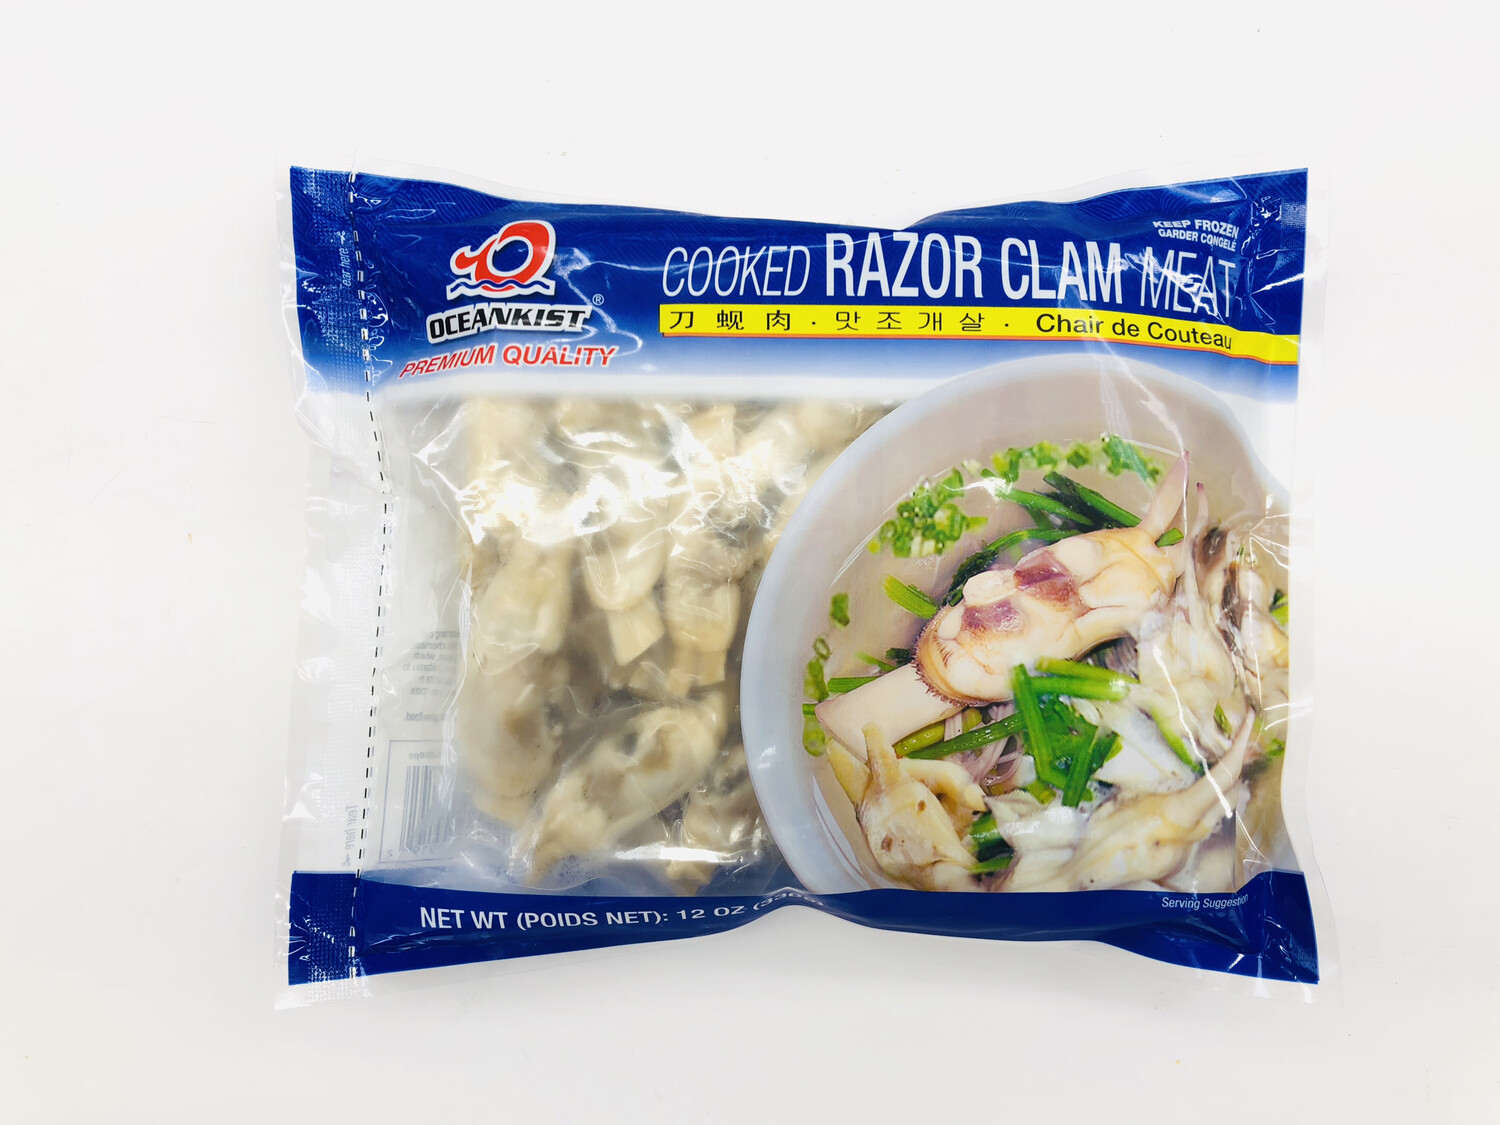 OCEANKIST 刀蚬肉 Cooked RAZOR CLAM MEAT 12OZ(336g)